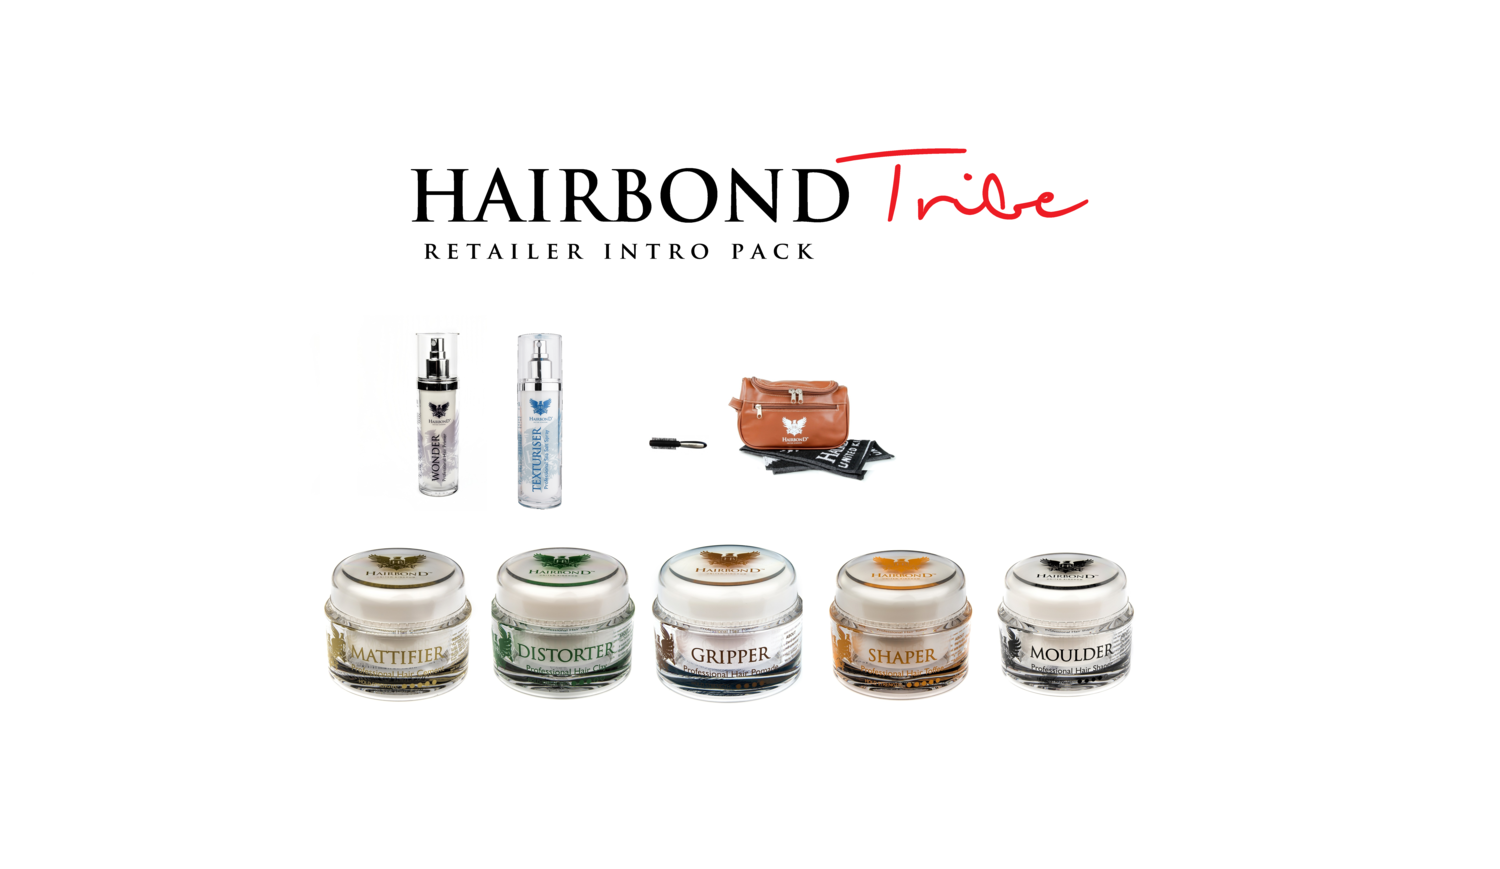 Hairbond Tribe Retailer Intro Pack